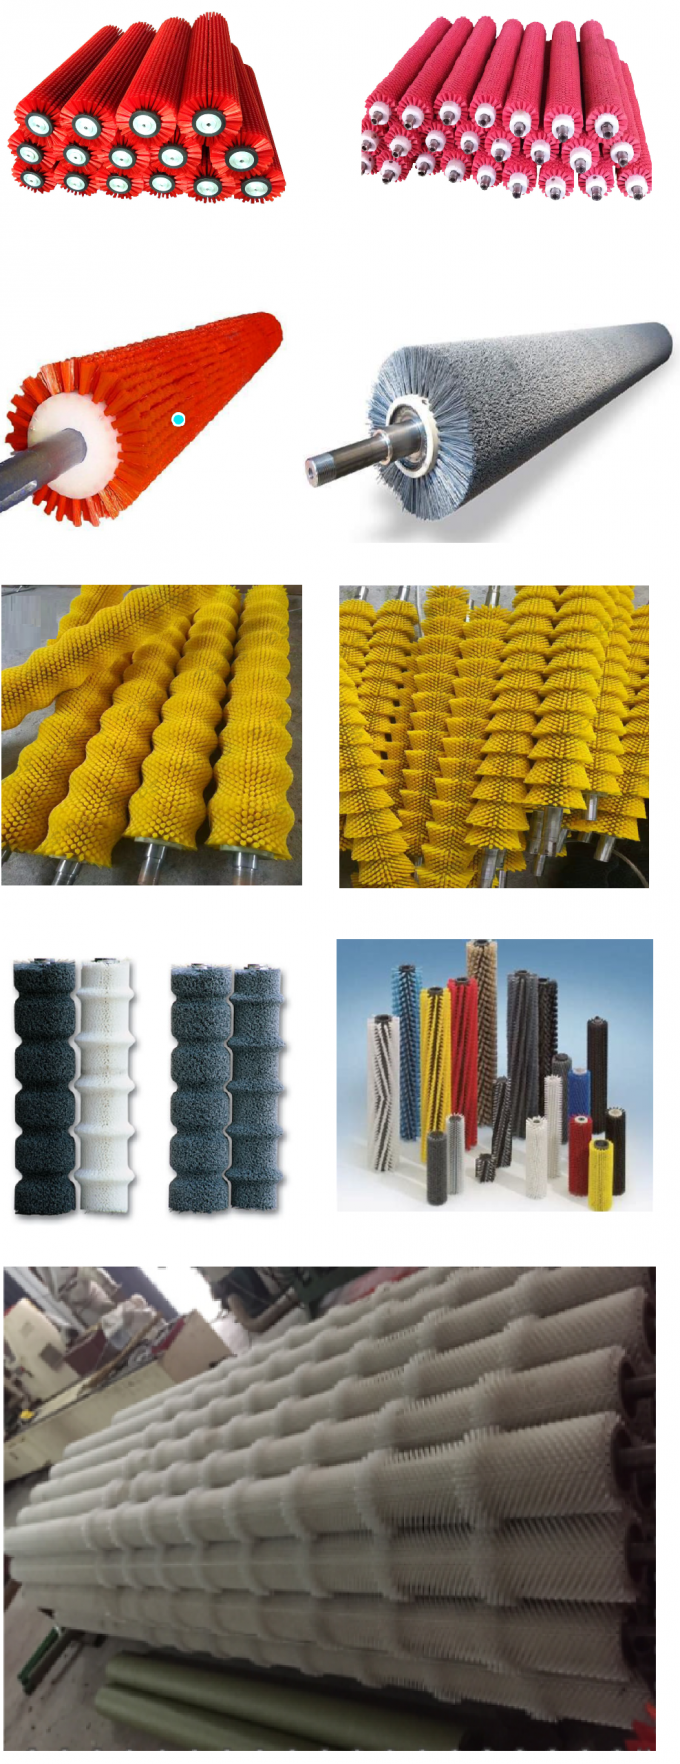 Durable Fruit Vegetable Cylindrical Wire Brush , Cylinder Wire Brush Multifunction